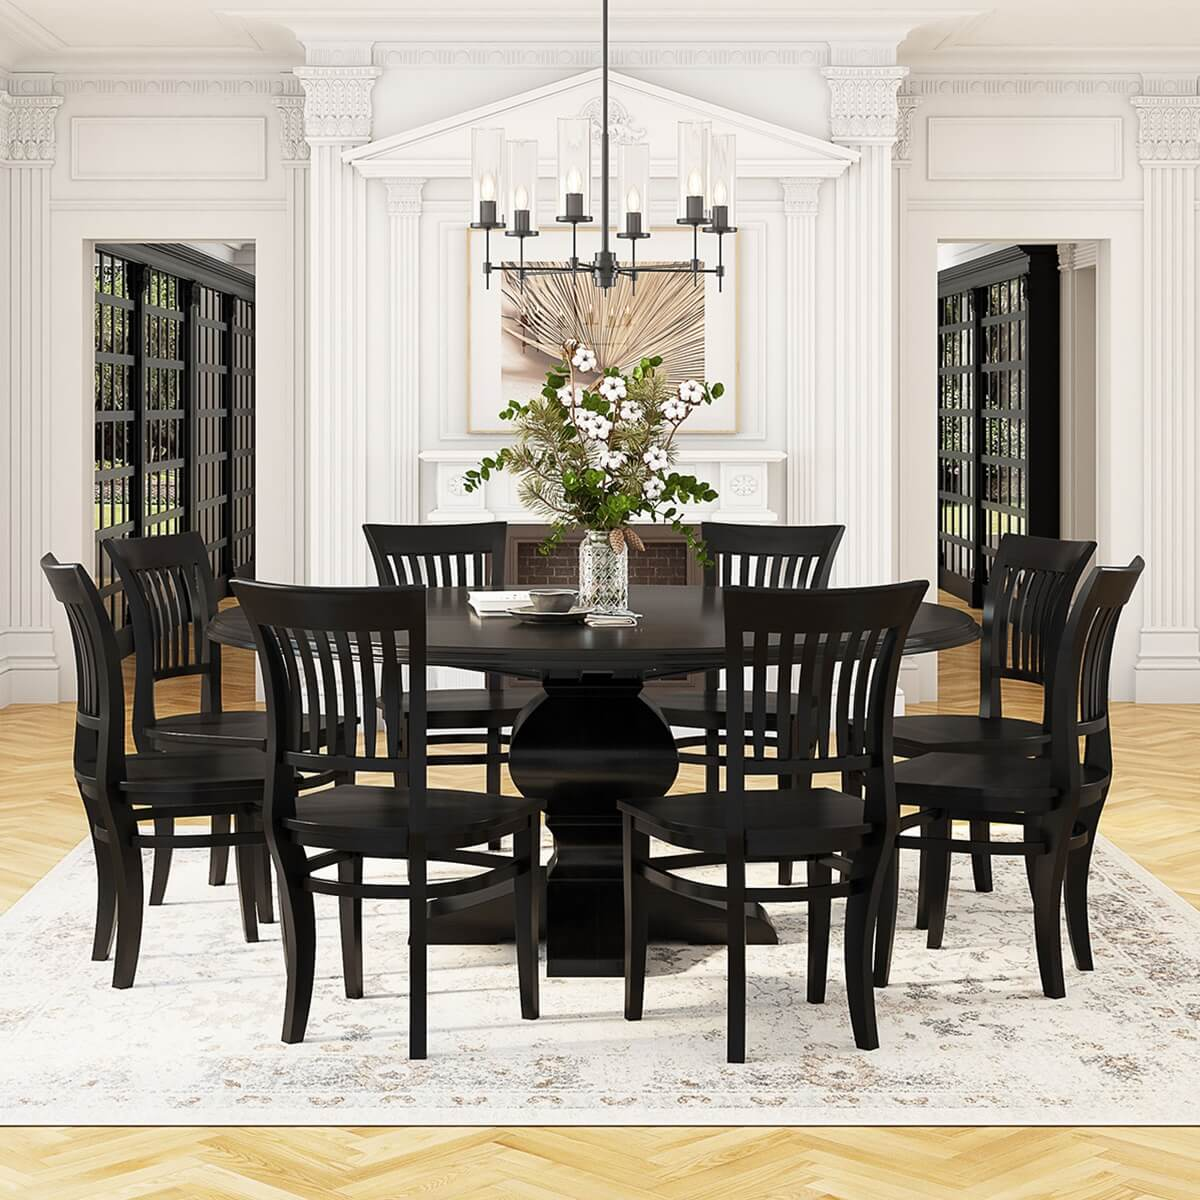 Sierra nevada large round rustic solid wood dining table for Large dining chairs